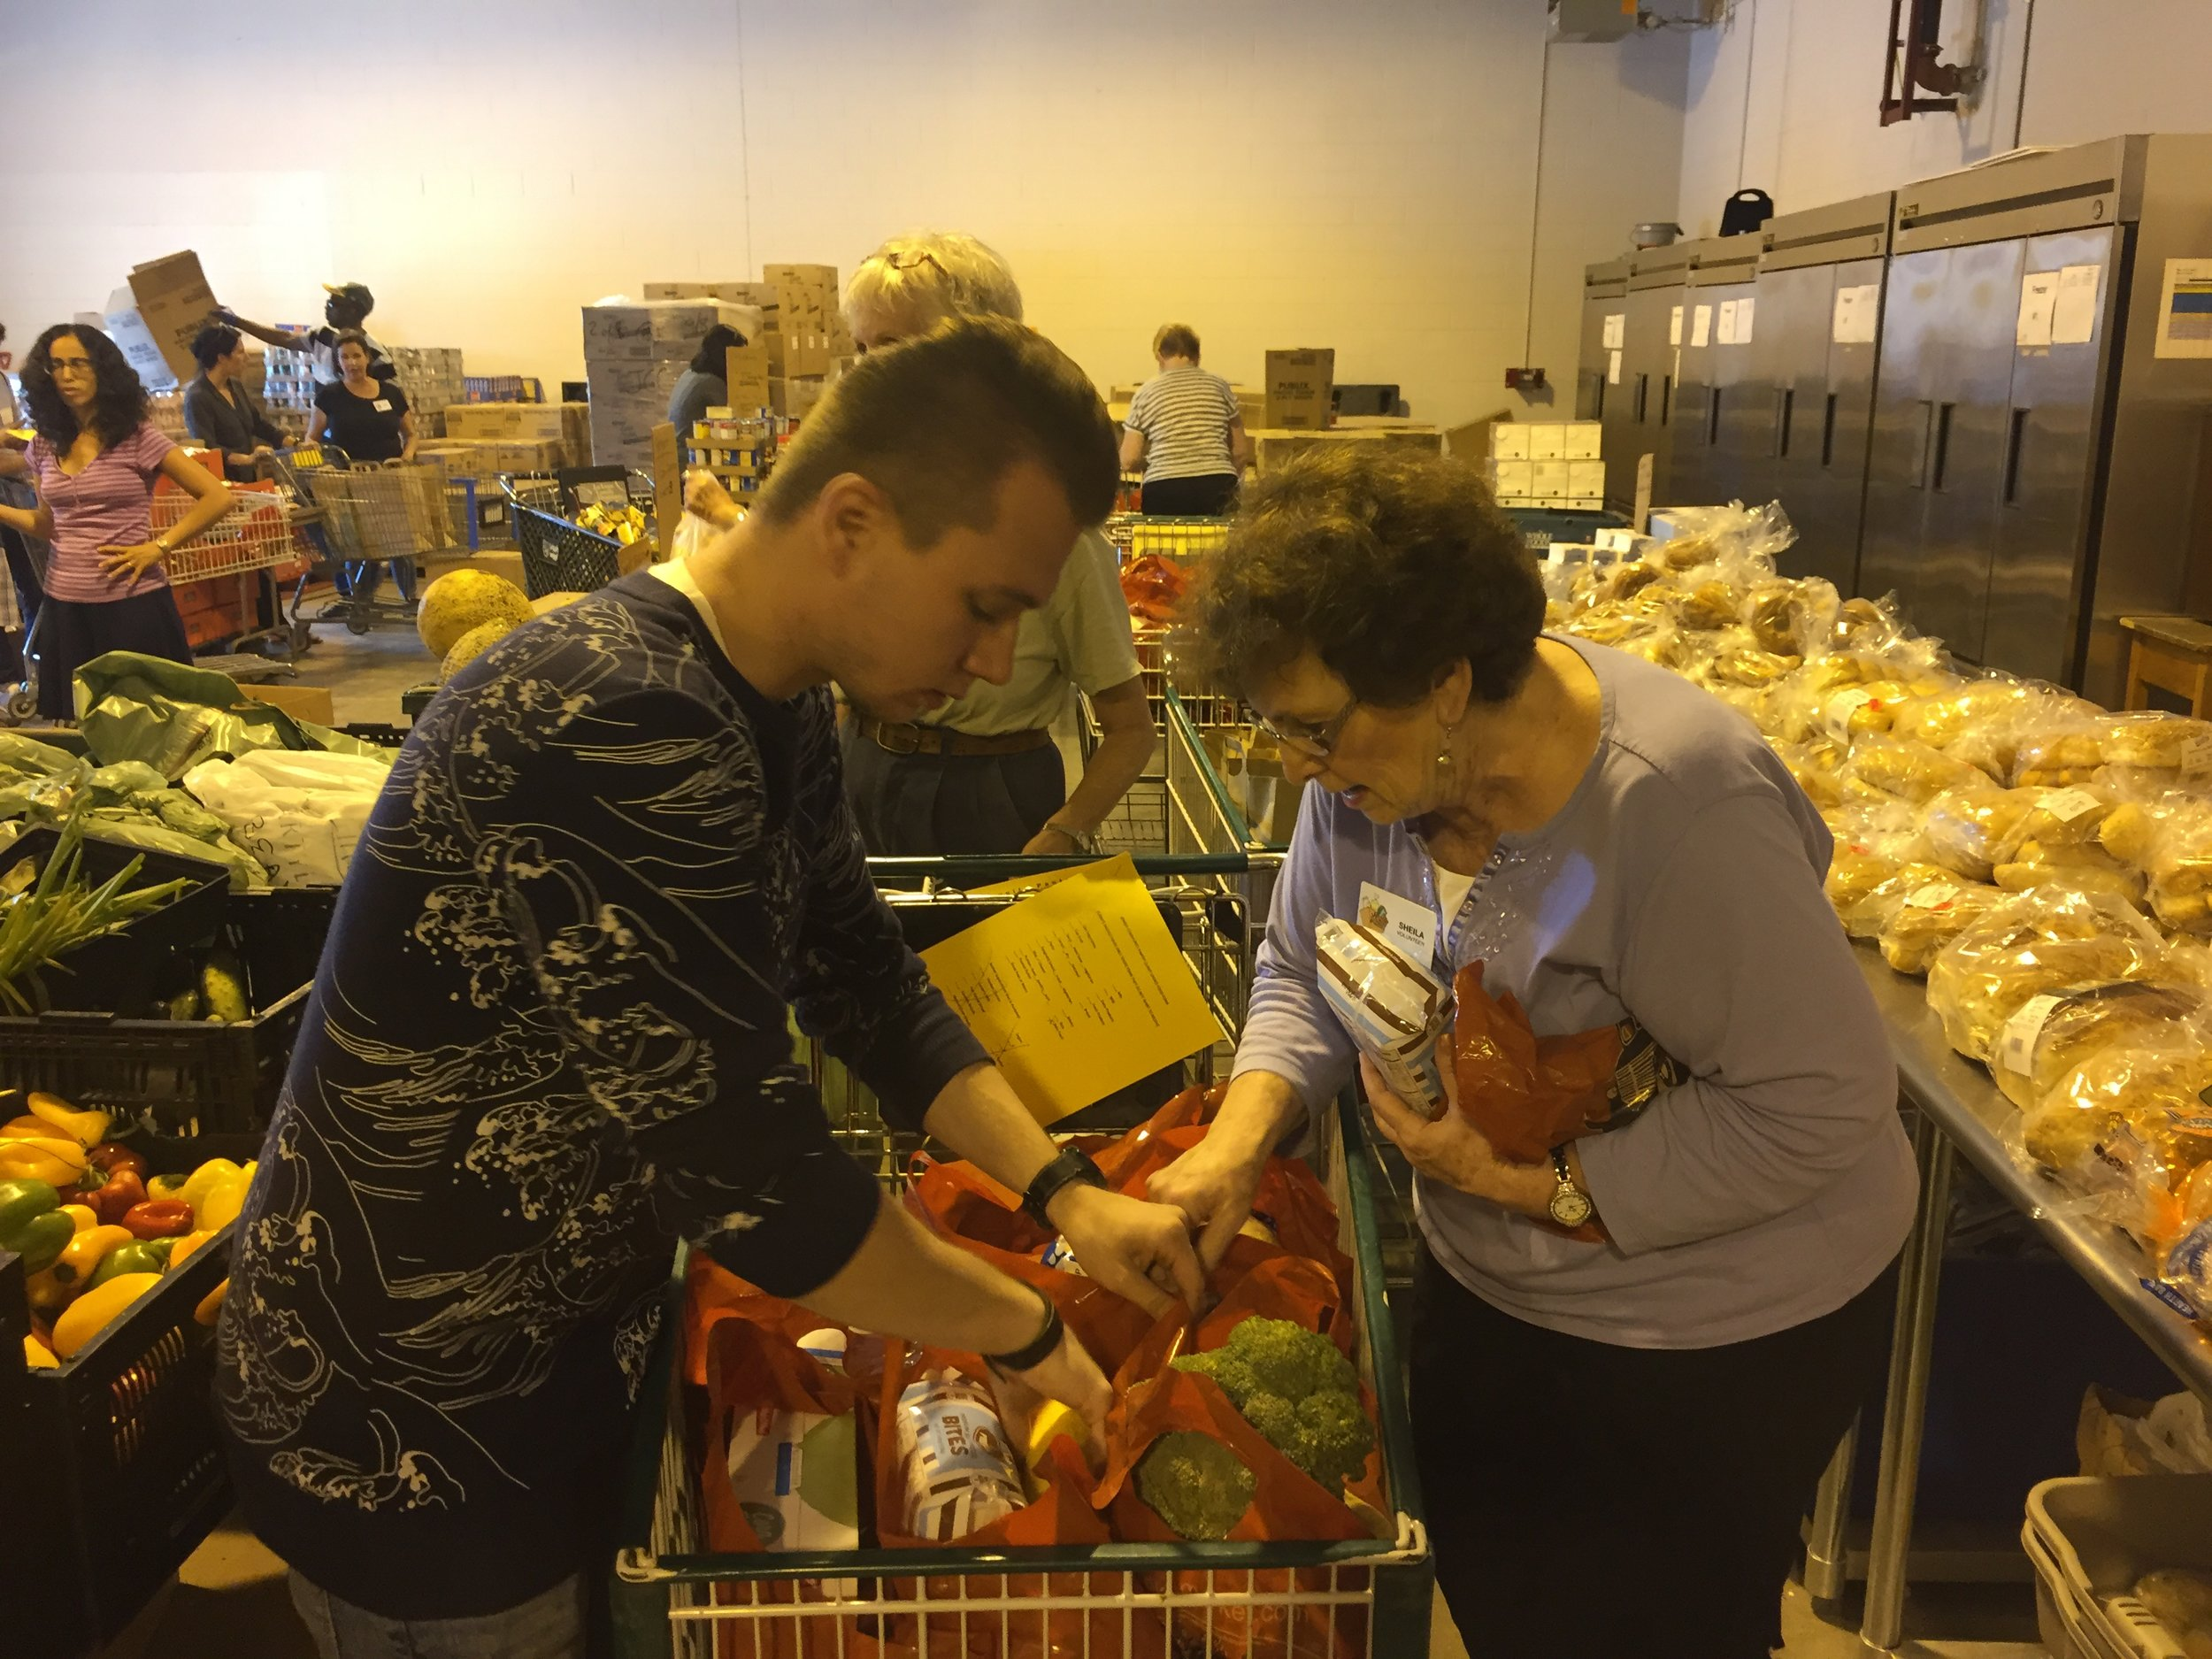 Volunteering at the Jewish Community Food Pantry in Milwaukee.